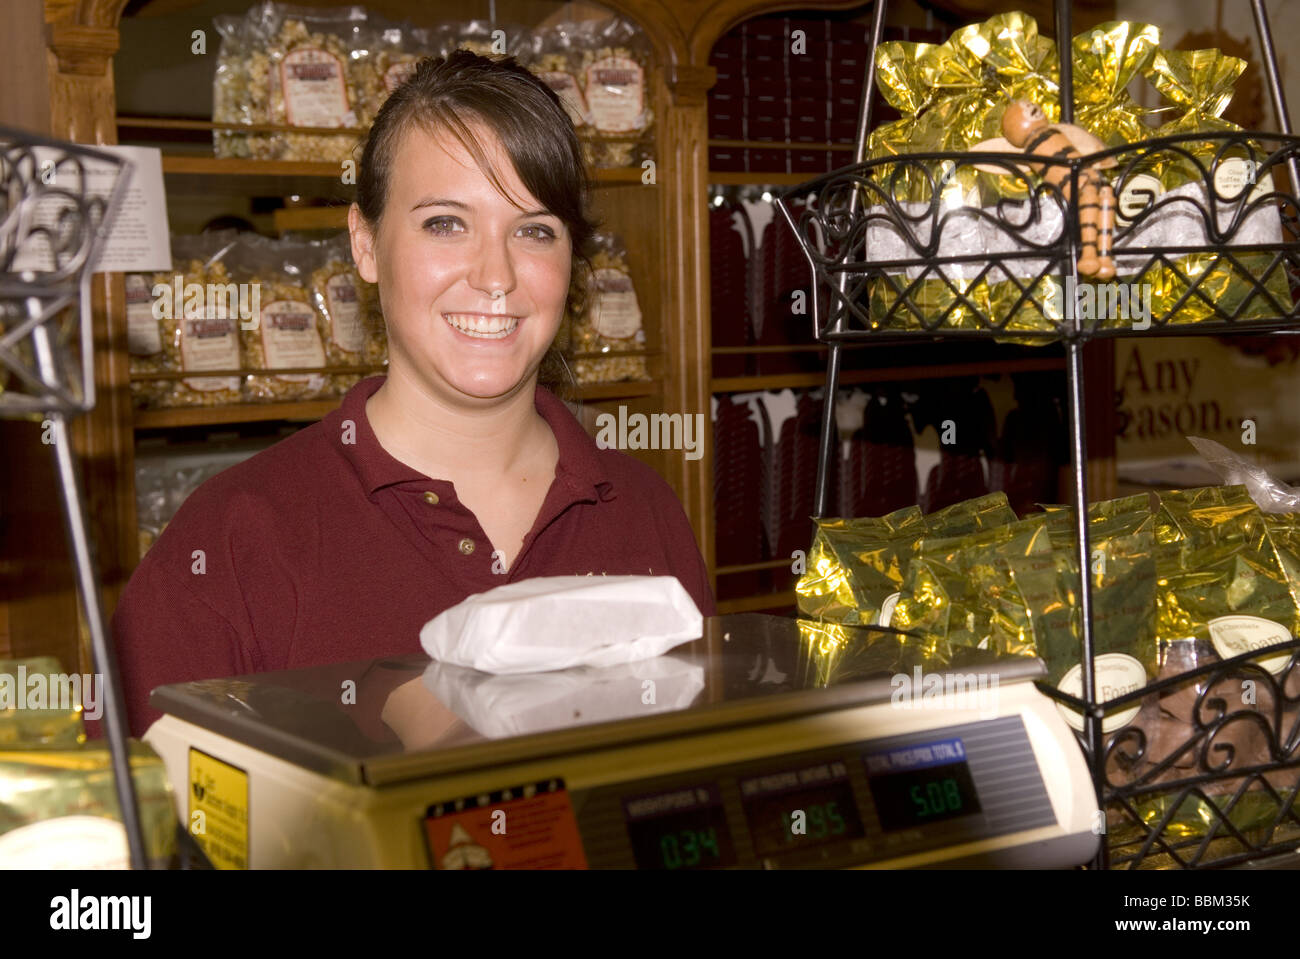 Kilwins Chocolate Shop Blowing Rock NC USA Stock Photo, Royalty ...